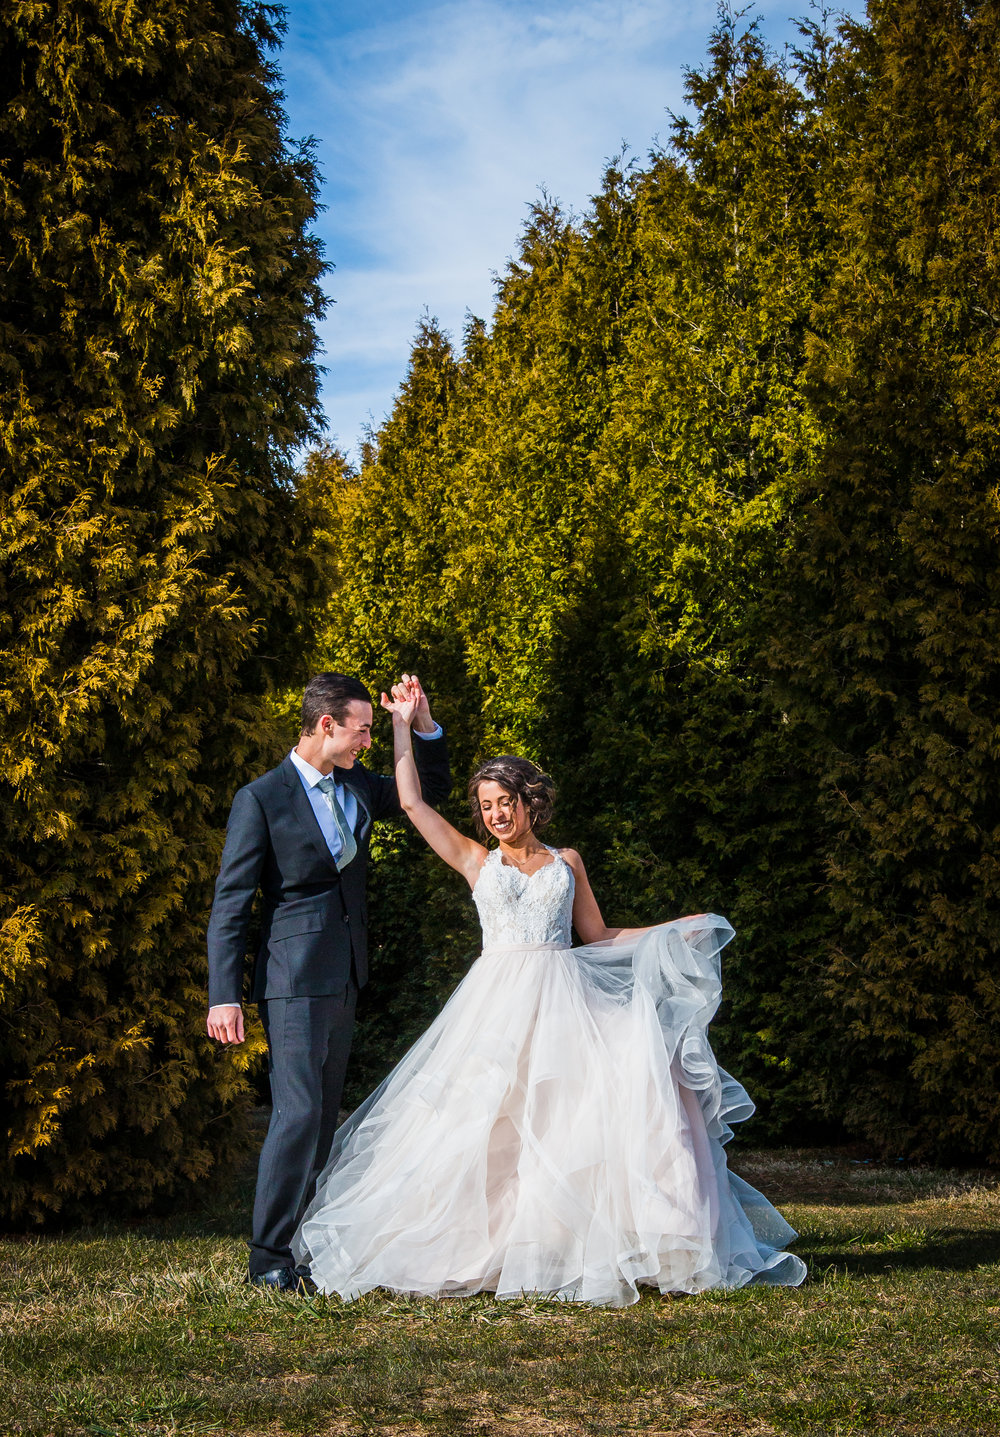 Bride and Groom at Whitetail Tree Farm in Springport, Indiana.